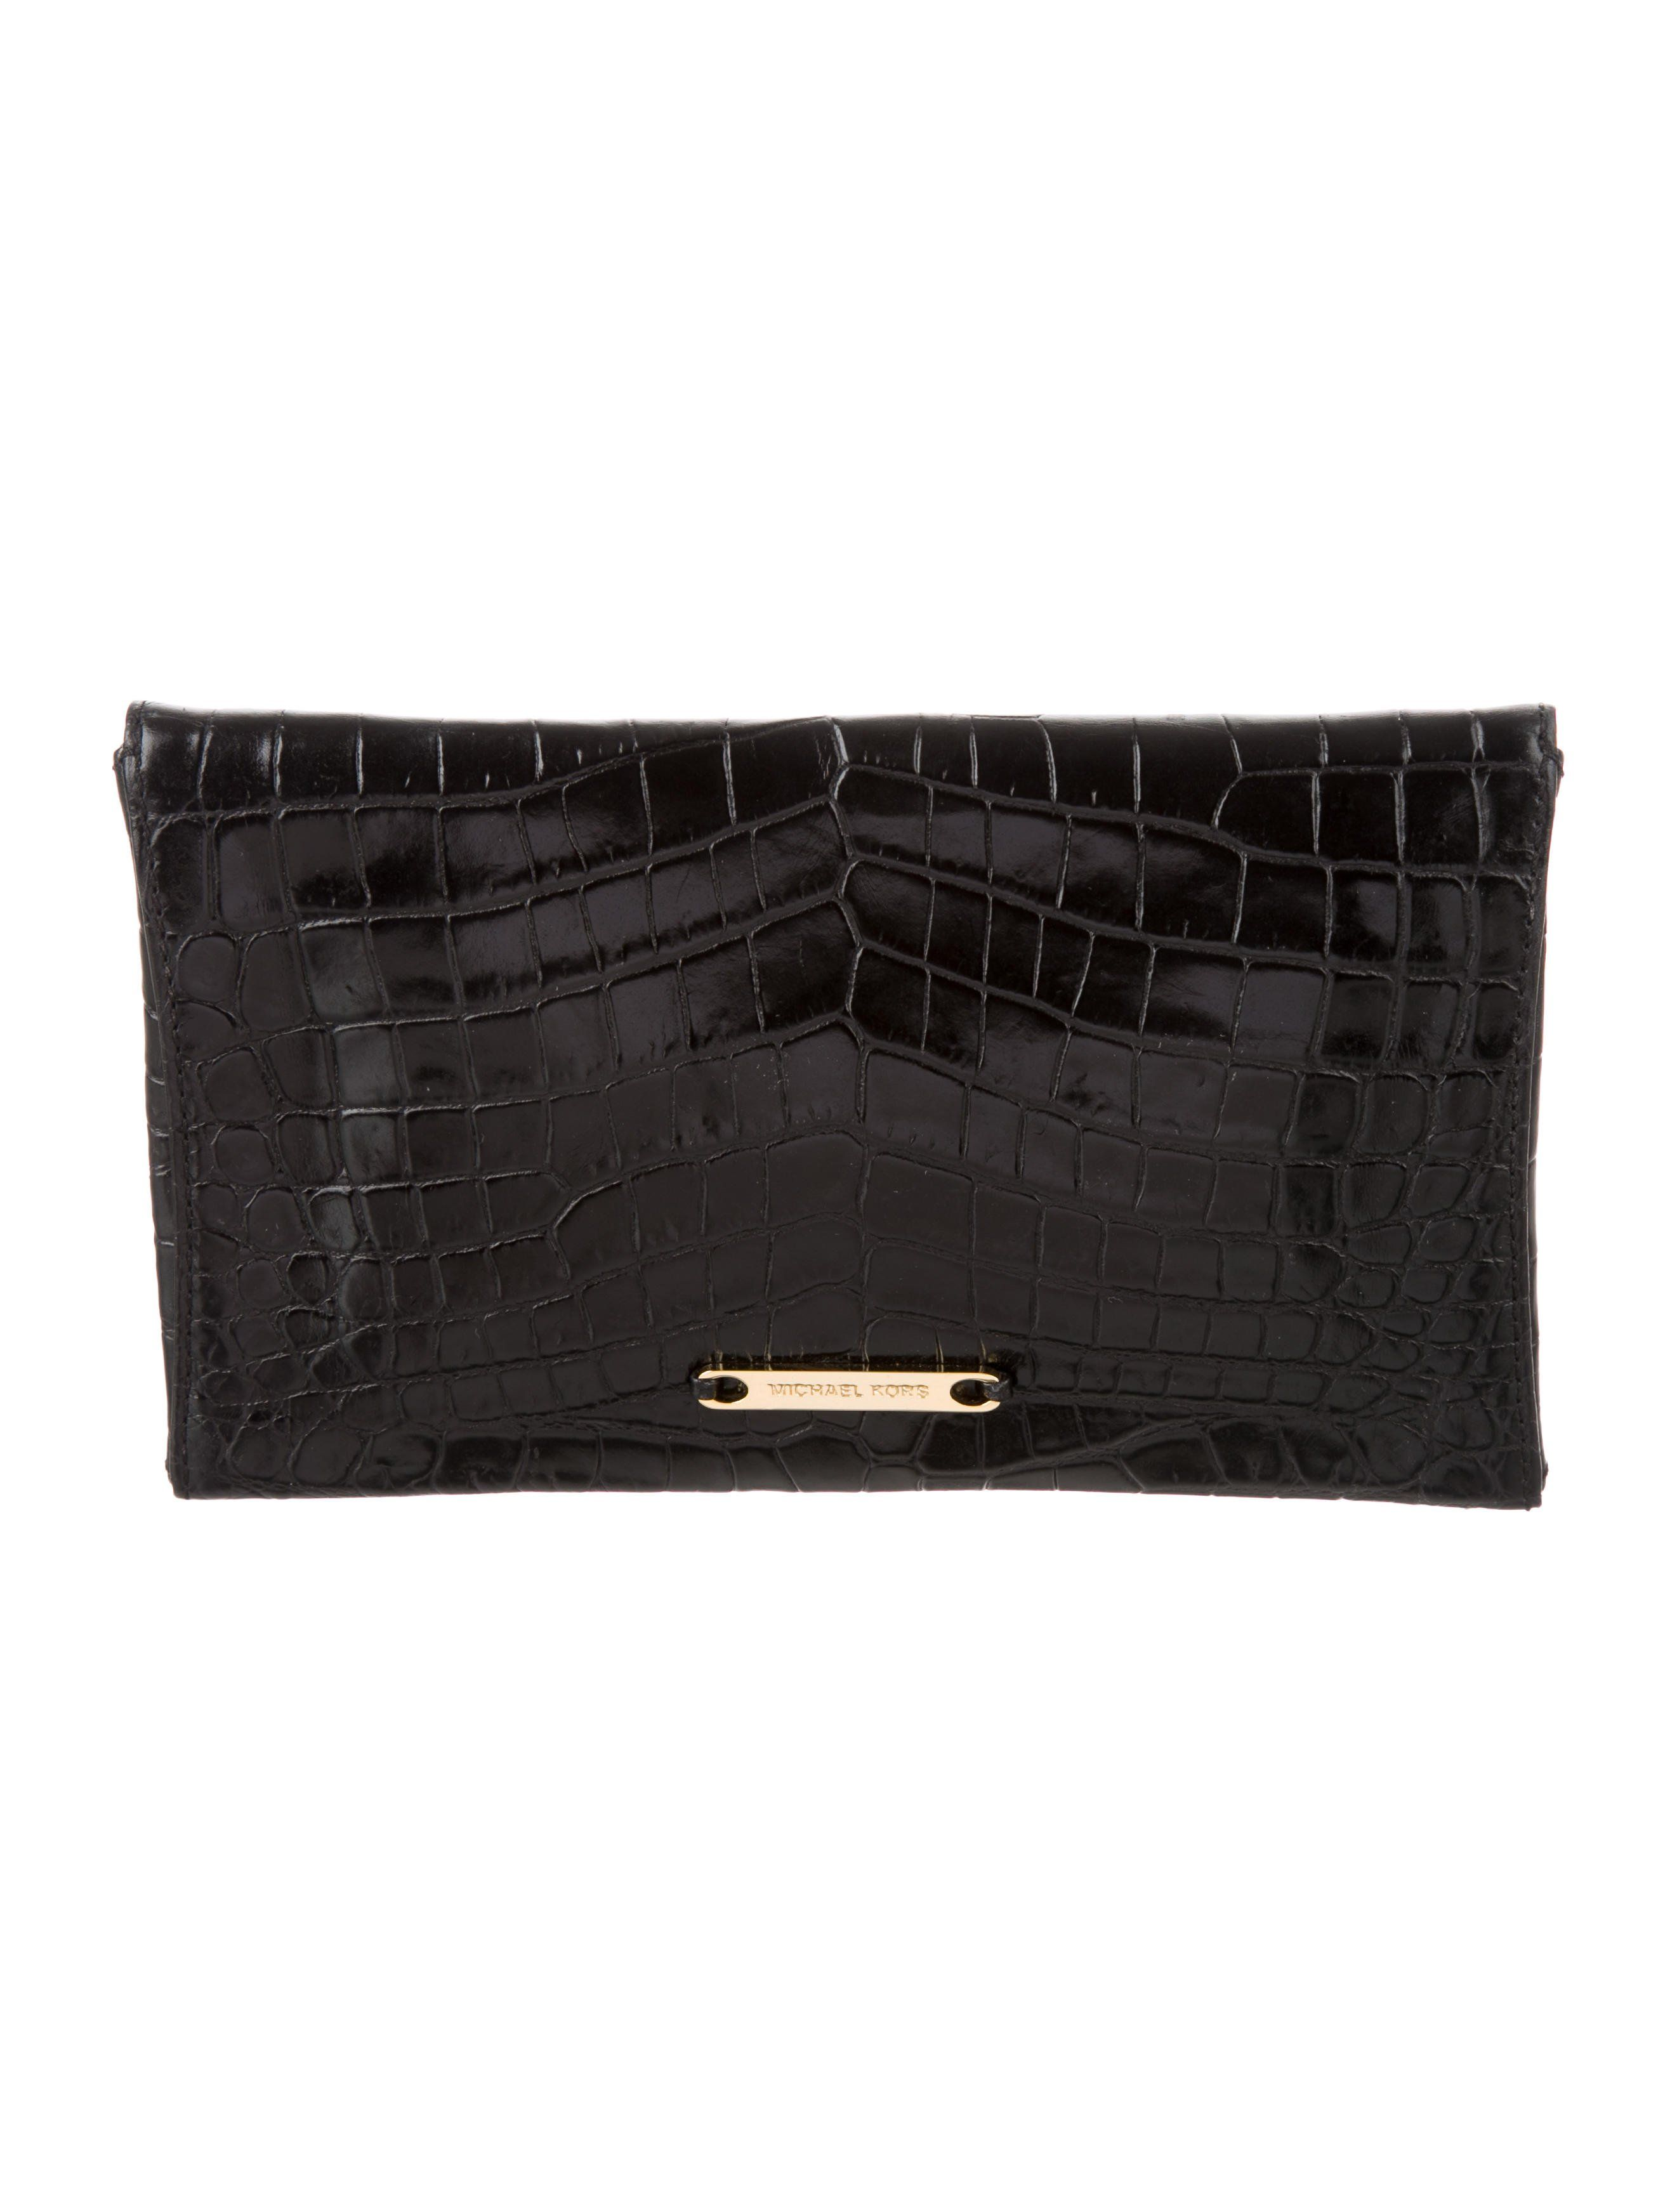 a223238be5cb Black embossed Michael Kors clutch with gold-tone hardware, logo placard at  back, metallic gold-tone leather interior, single slit pocket at interior  wall a